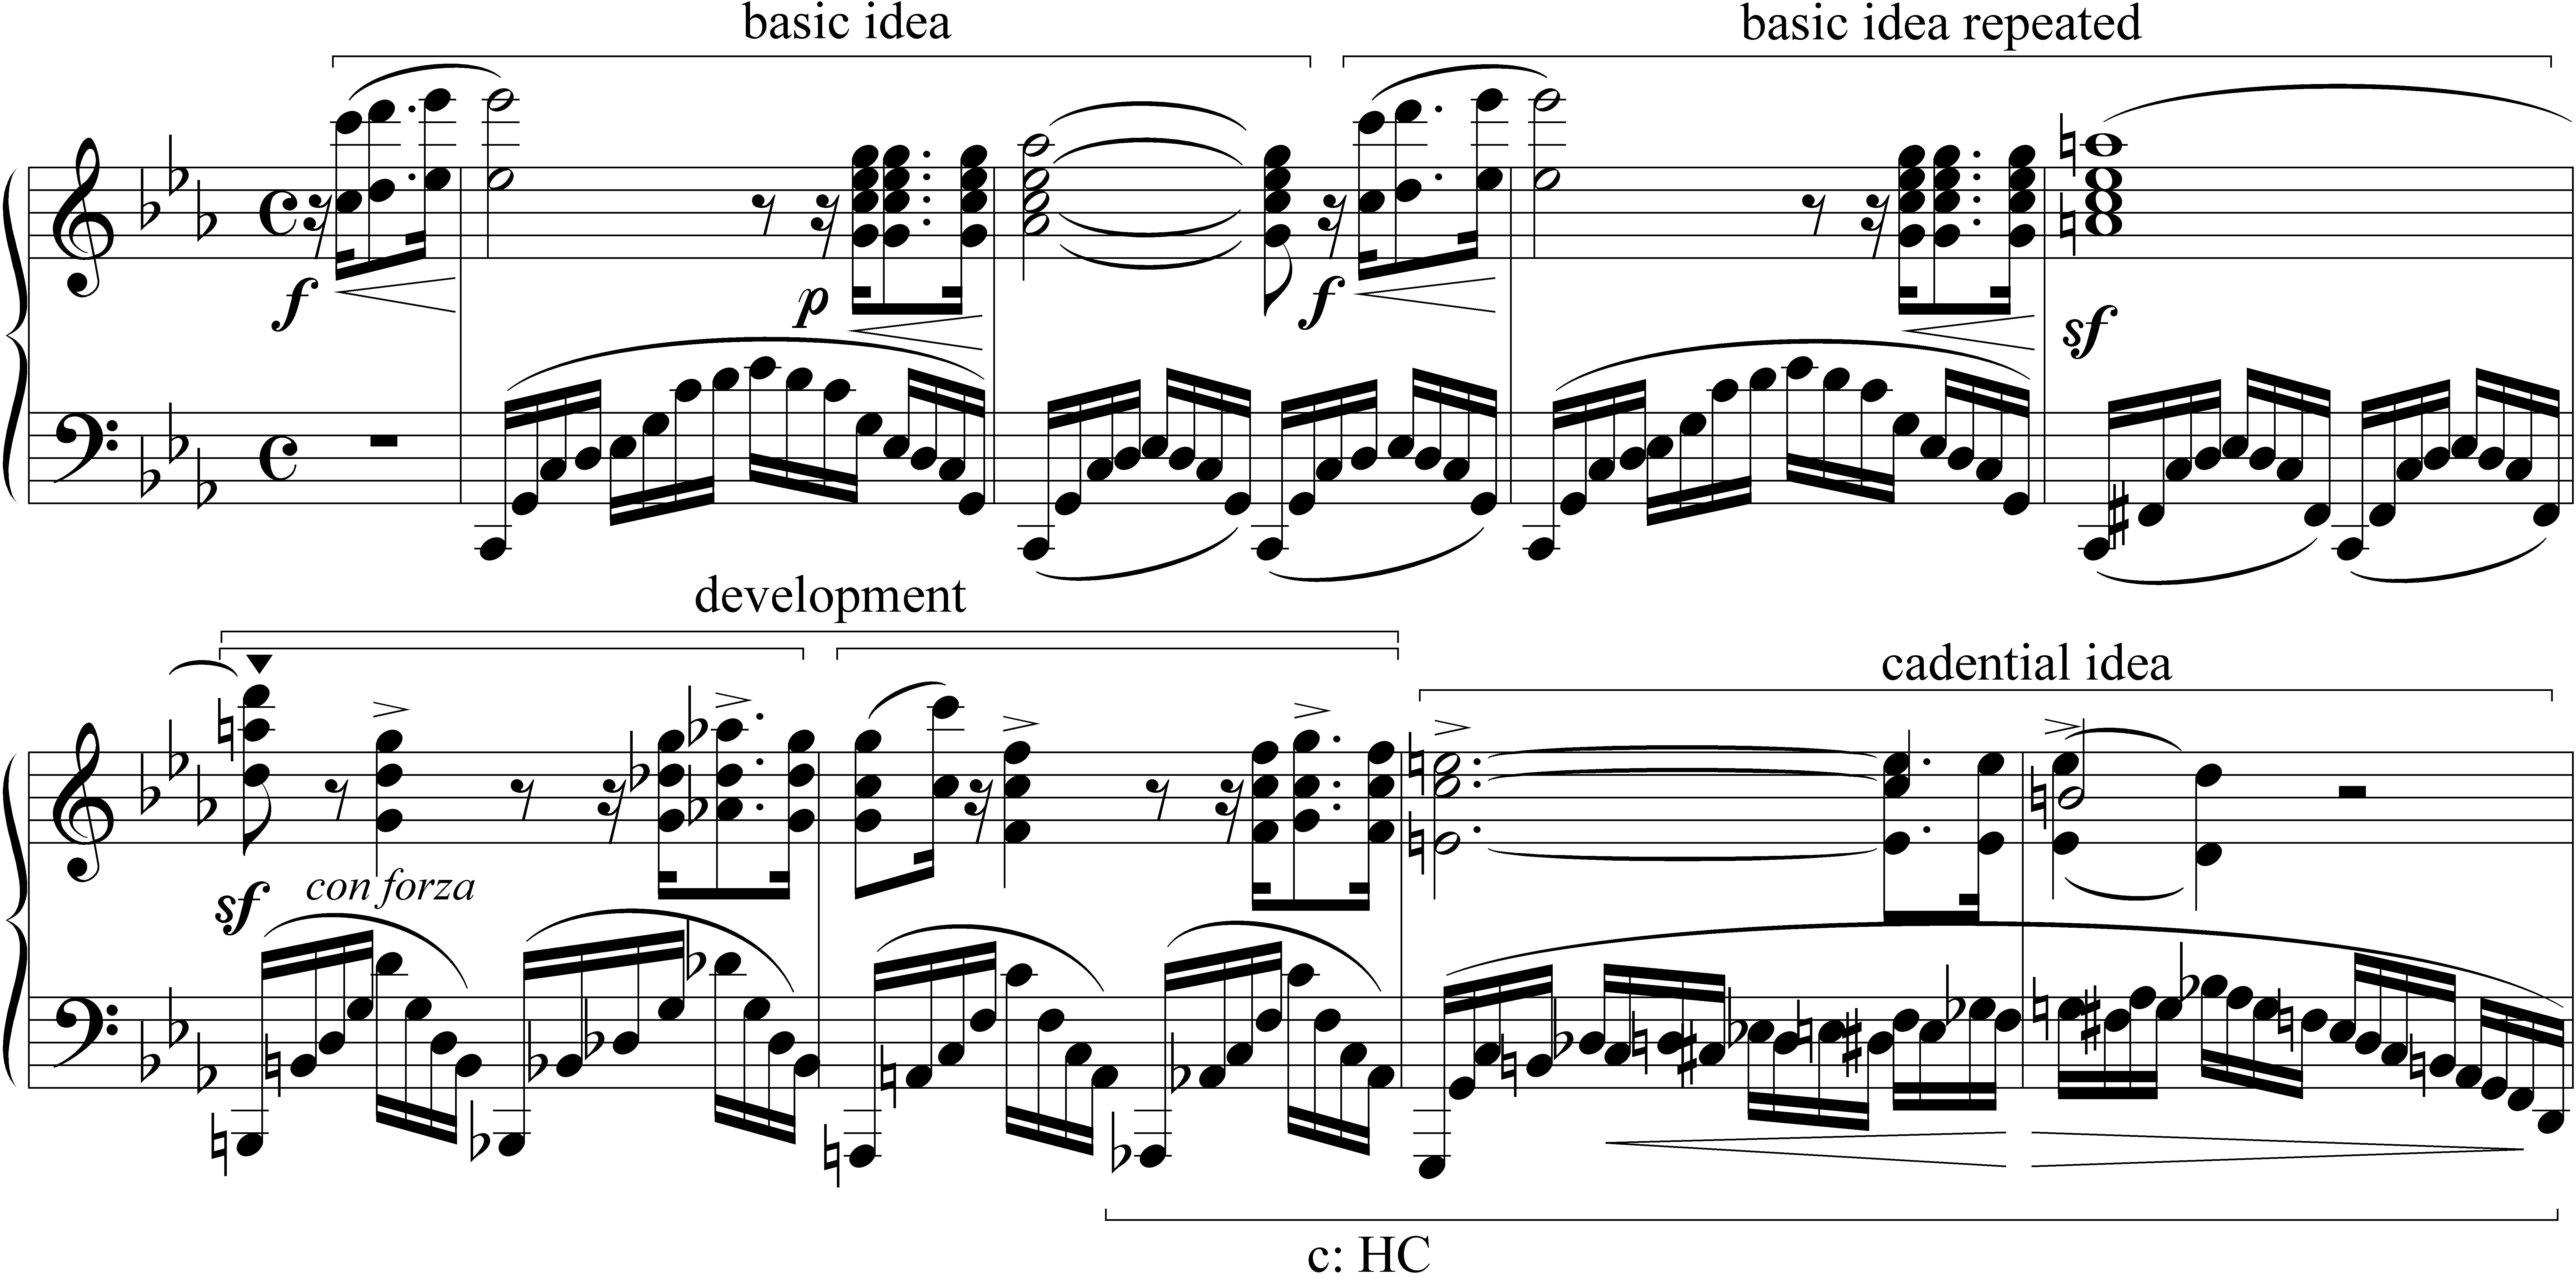 A Study in C Major - 16 Techniques for Embellishing Music - 1